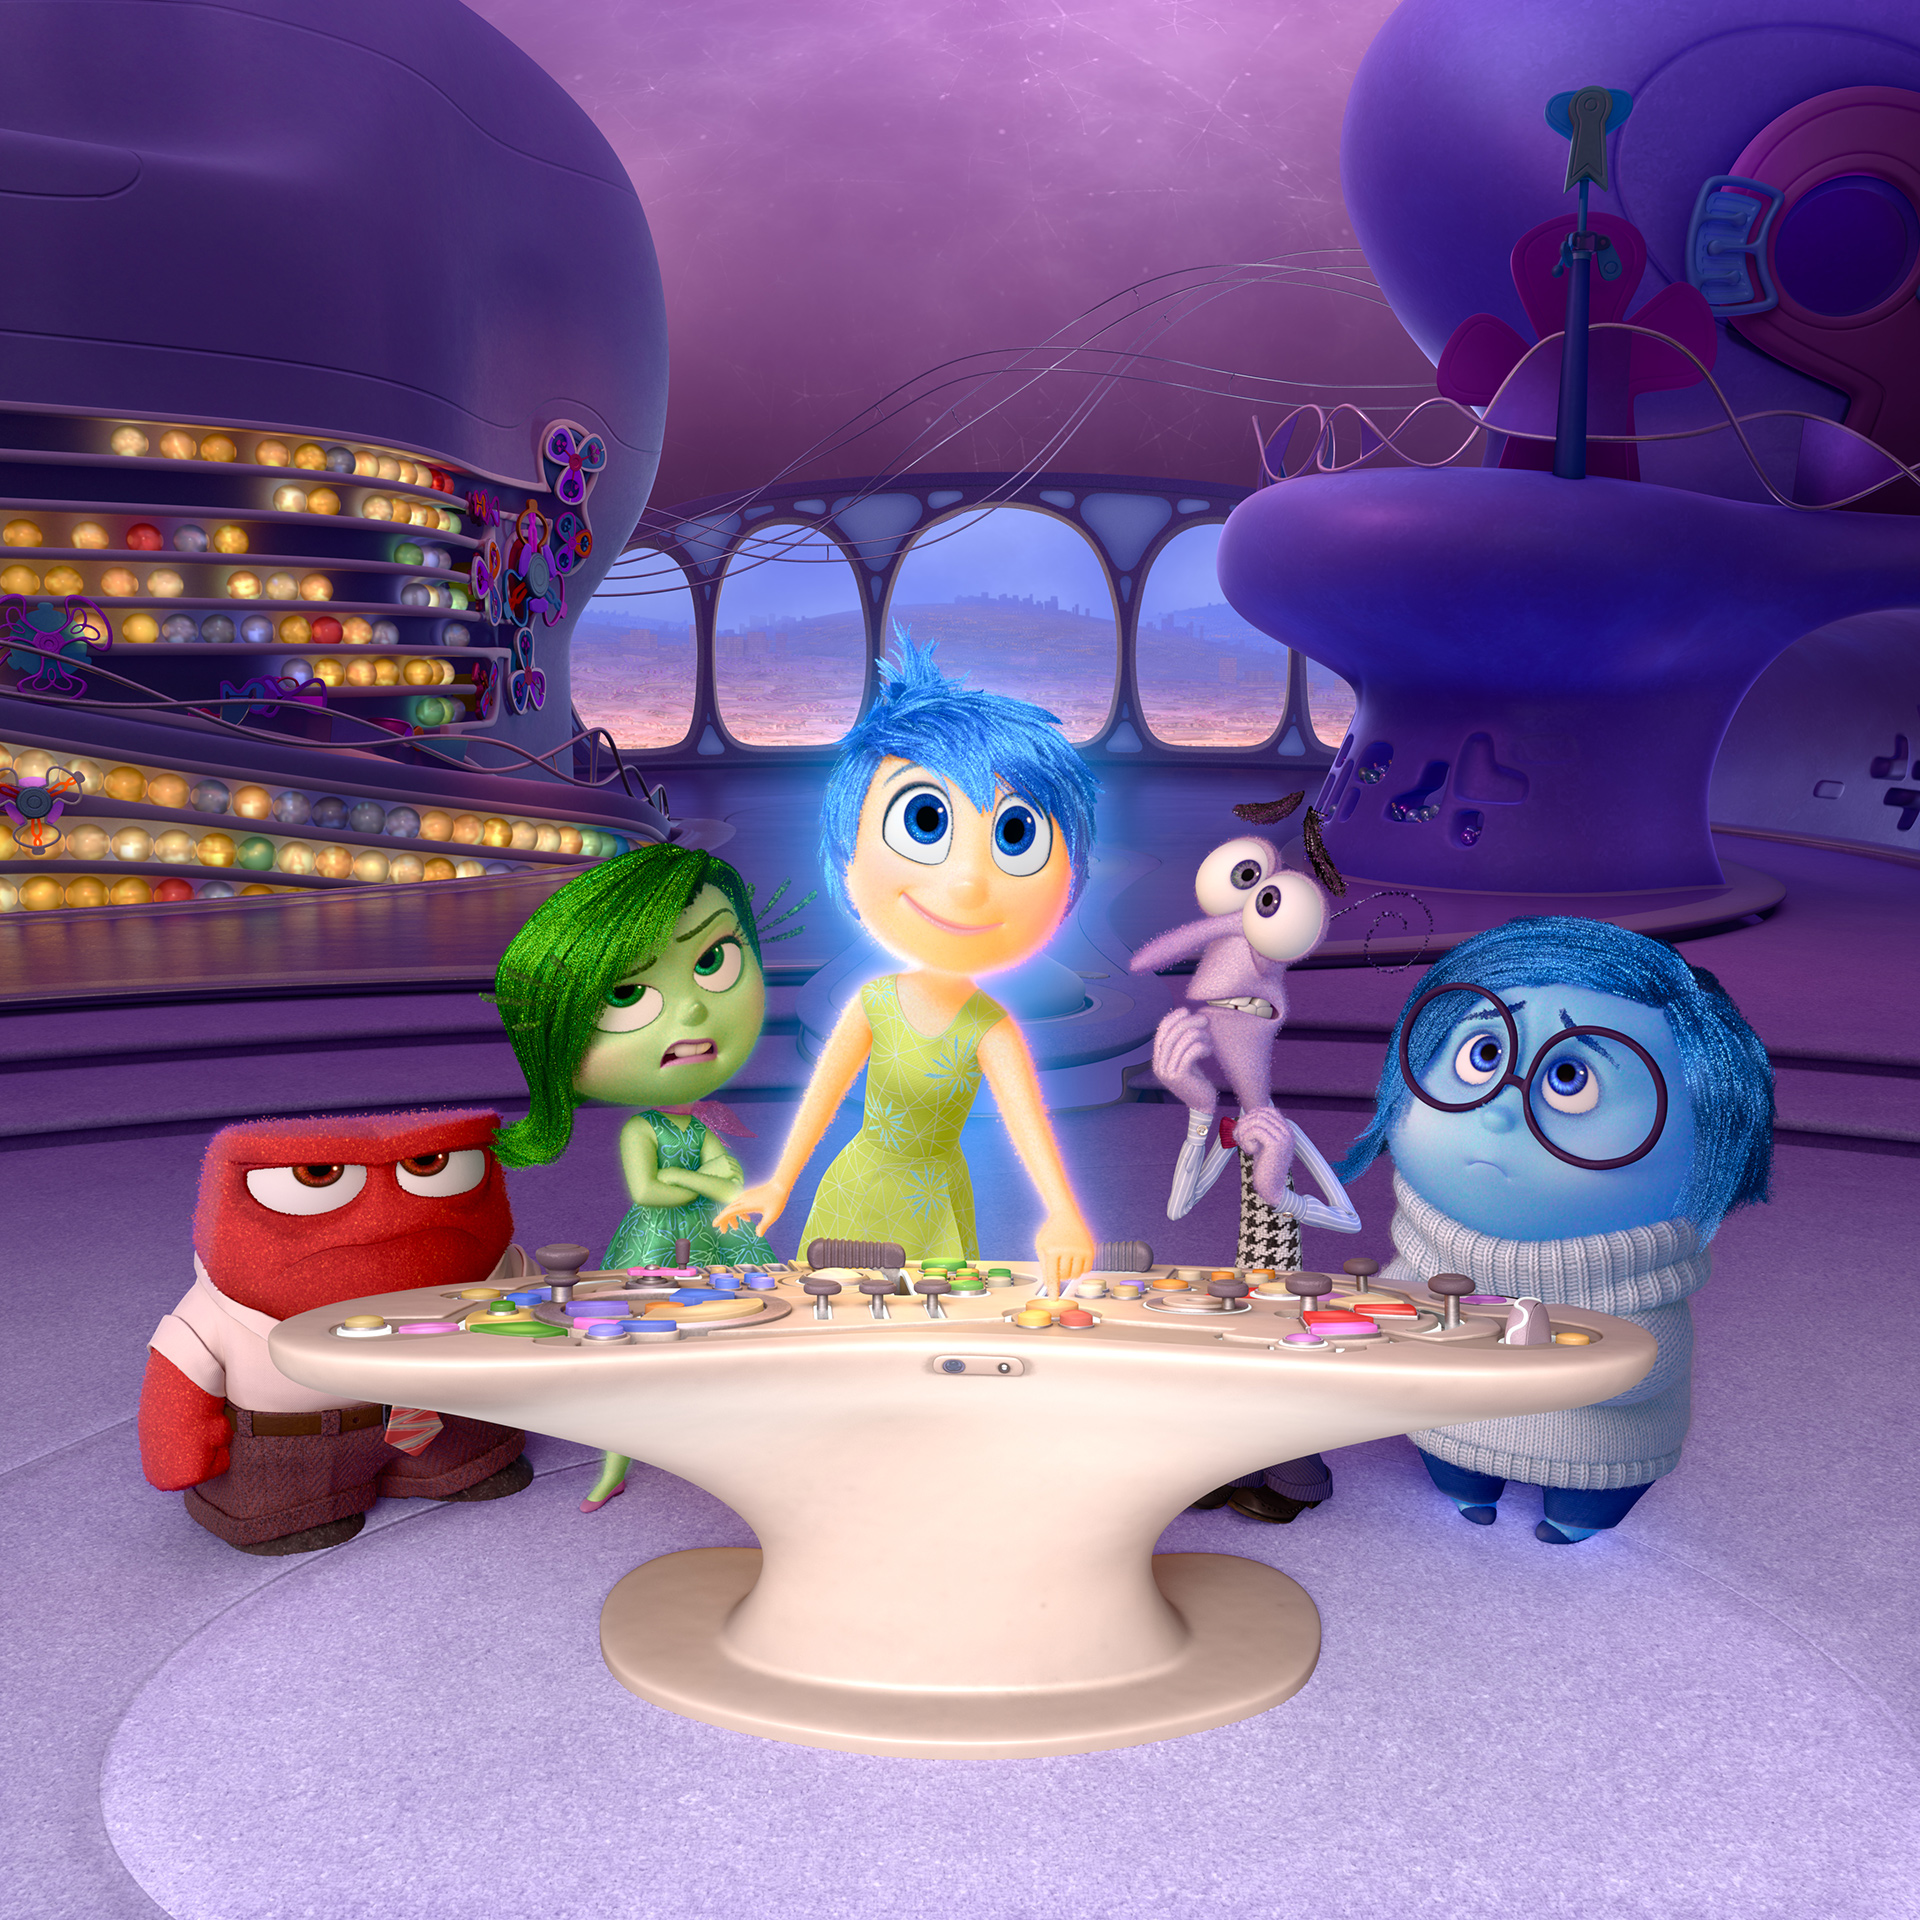 Dinner and a Movie: Inside Out